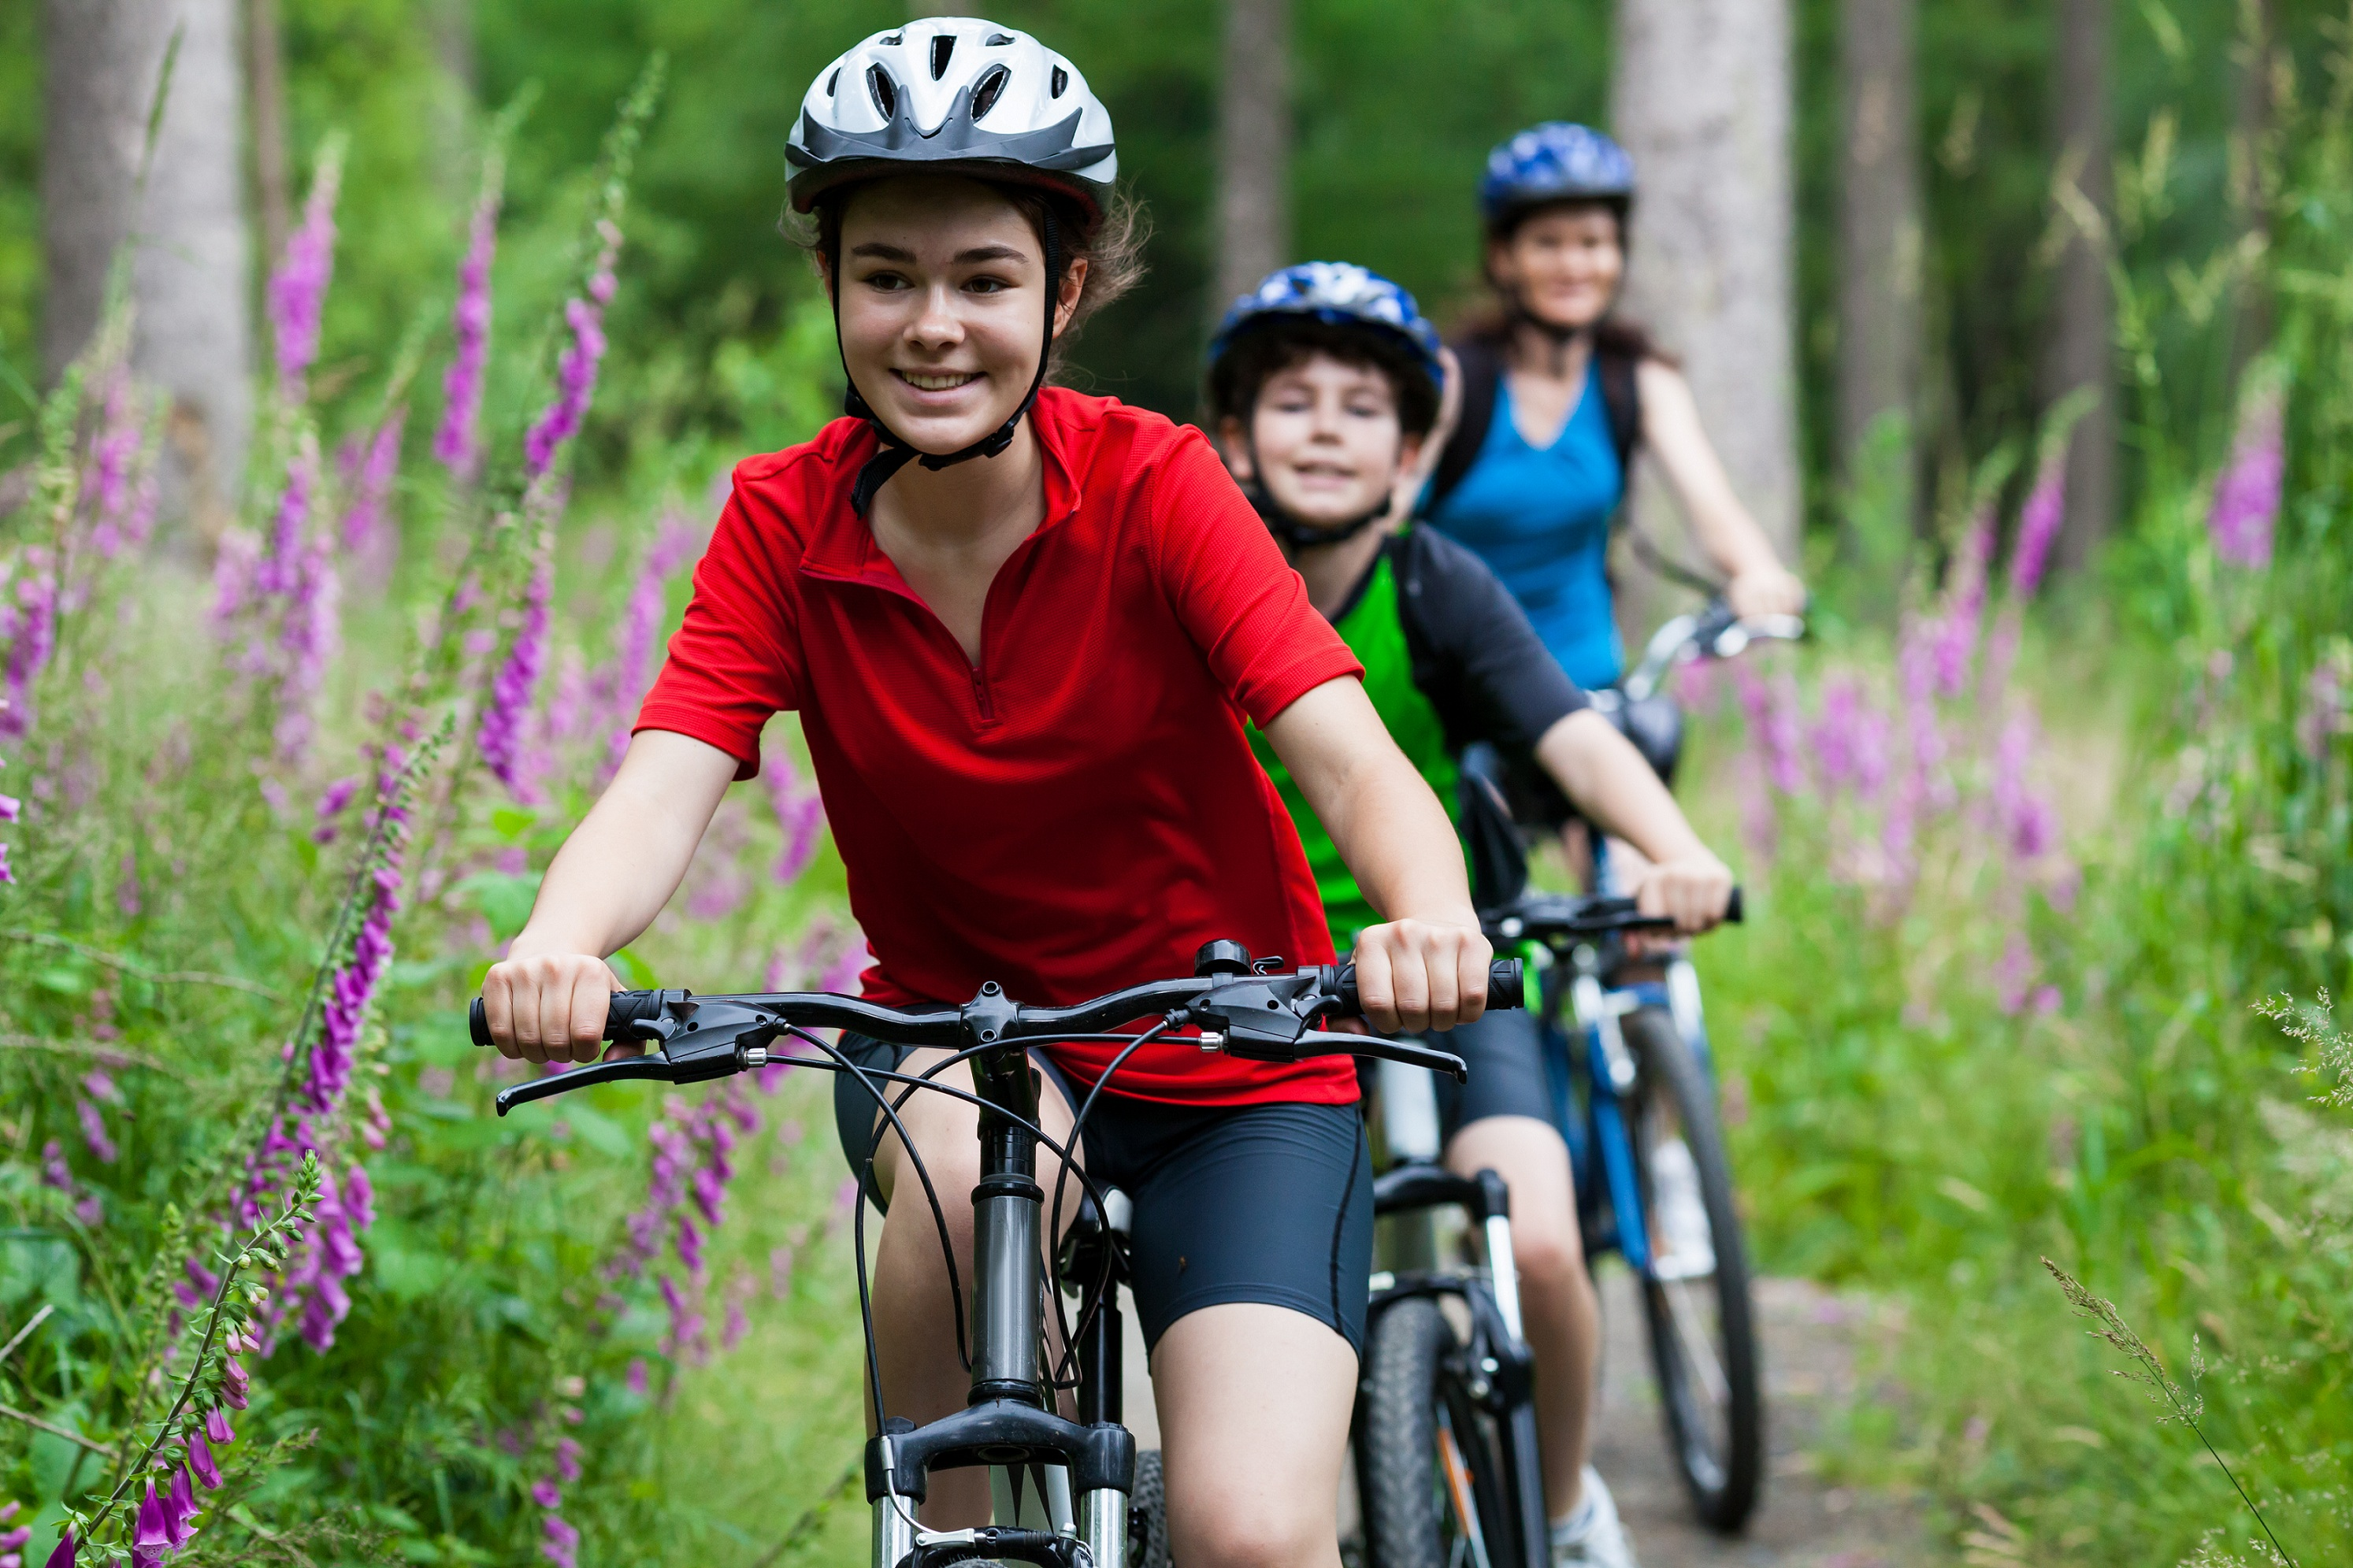 Your-Child-Might-Get-Hurt-During-Cycling-family